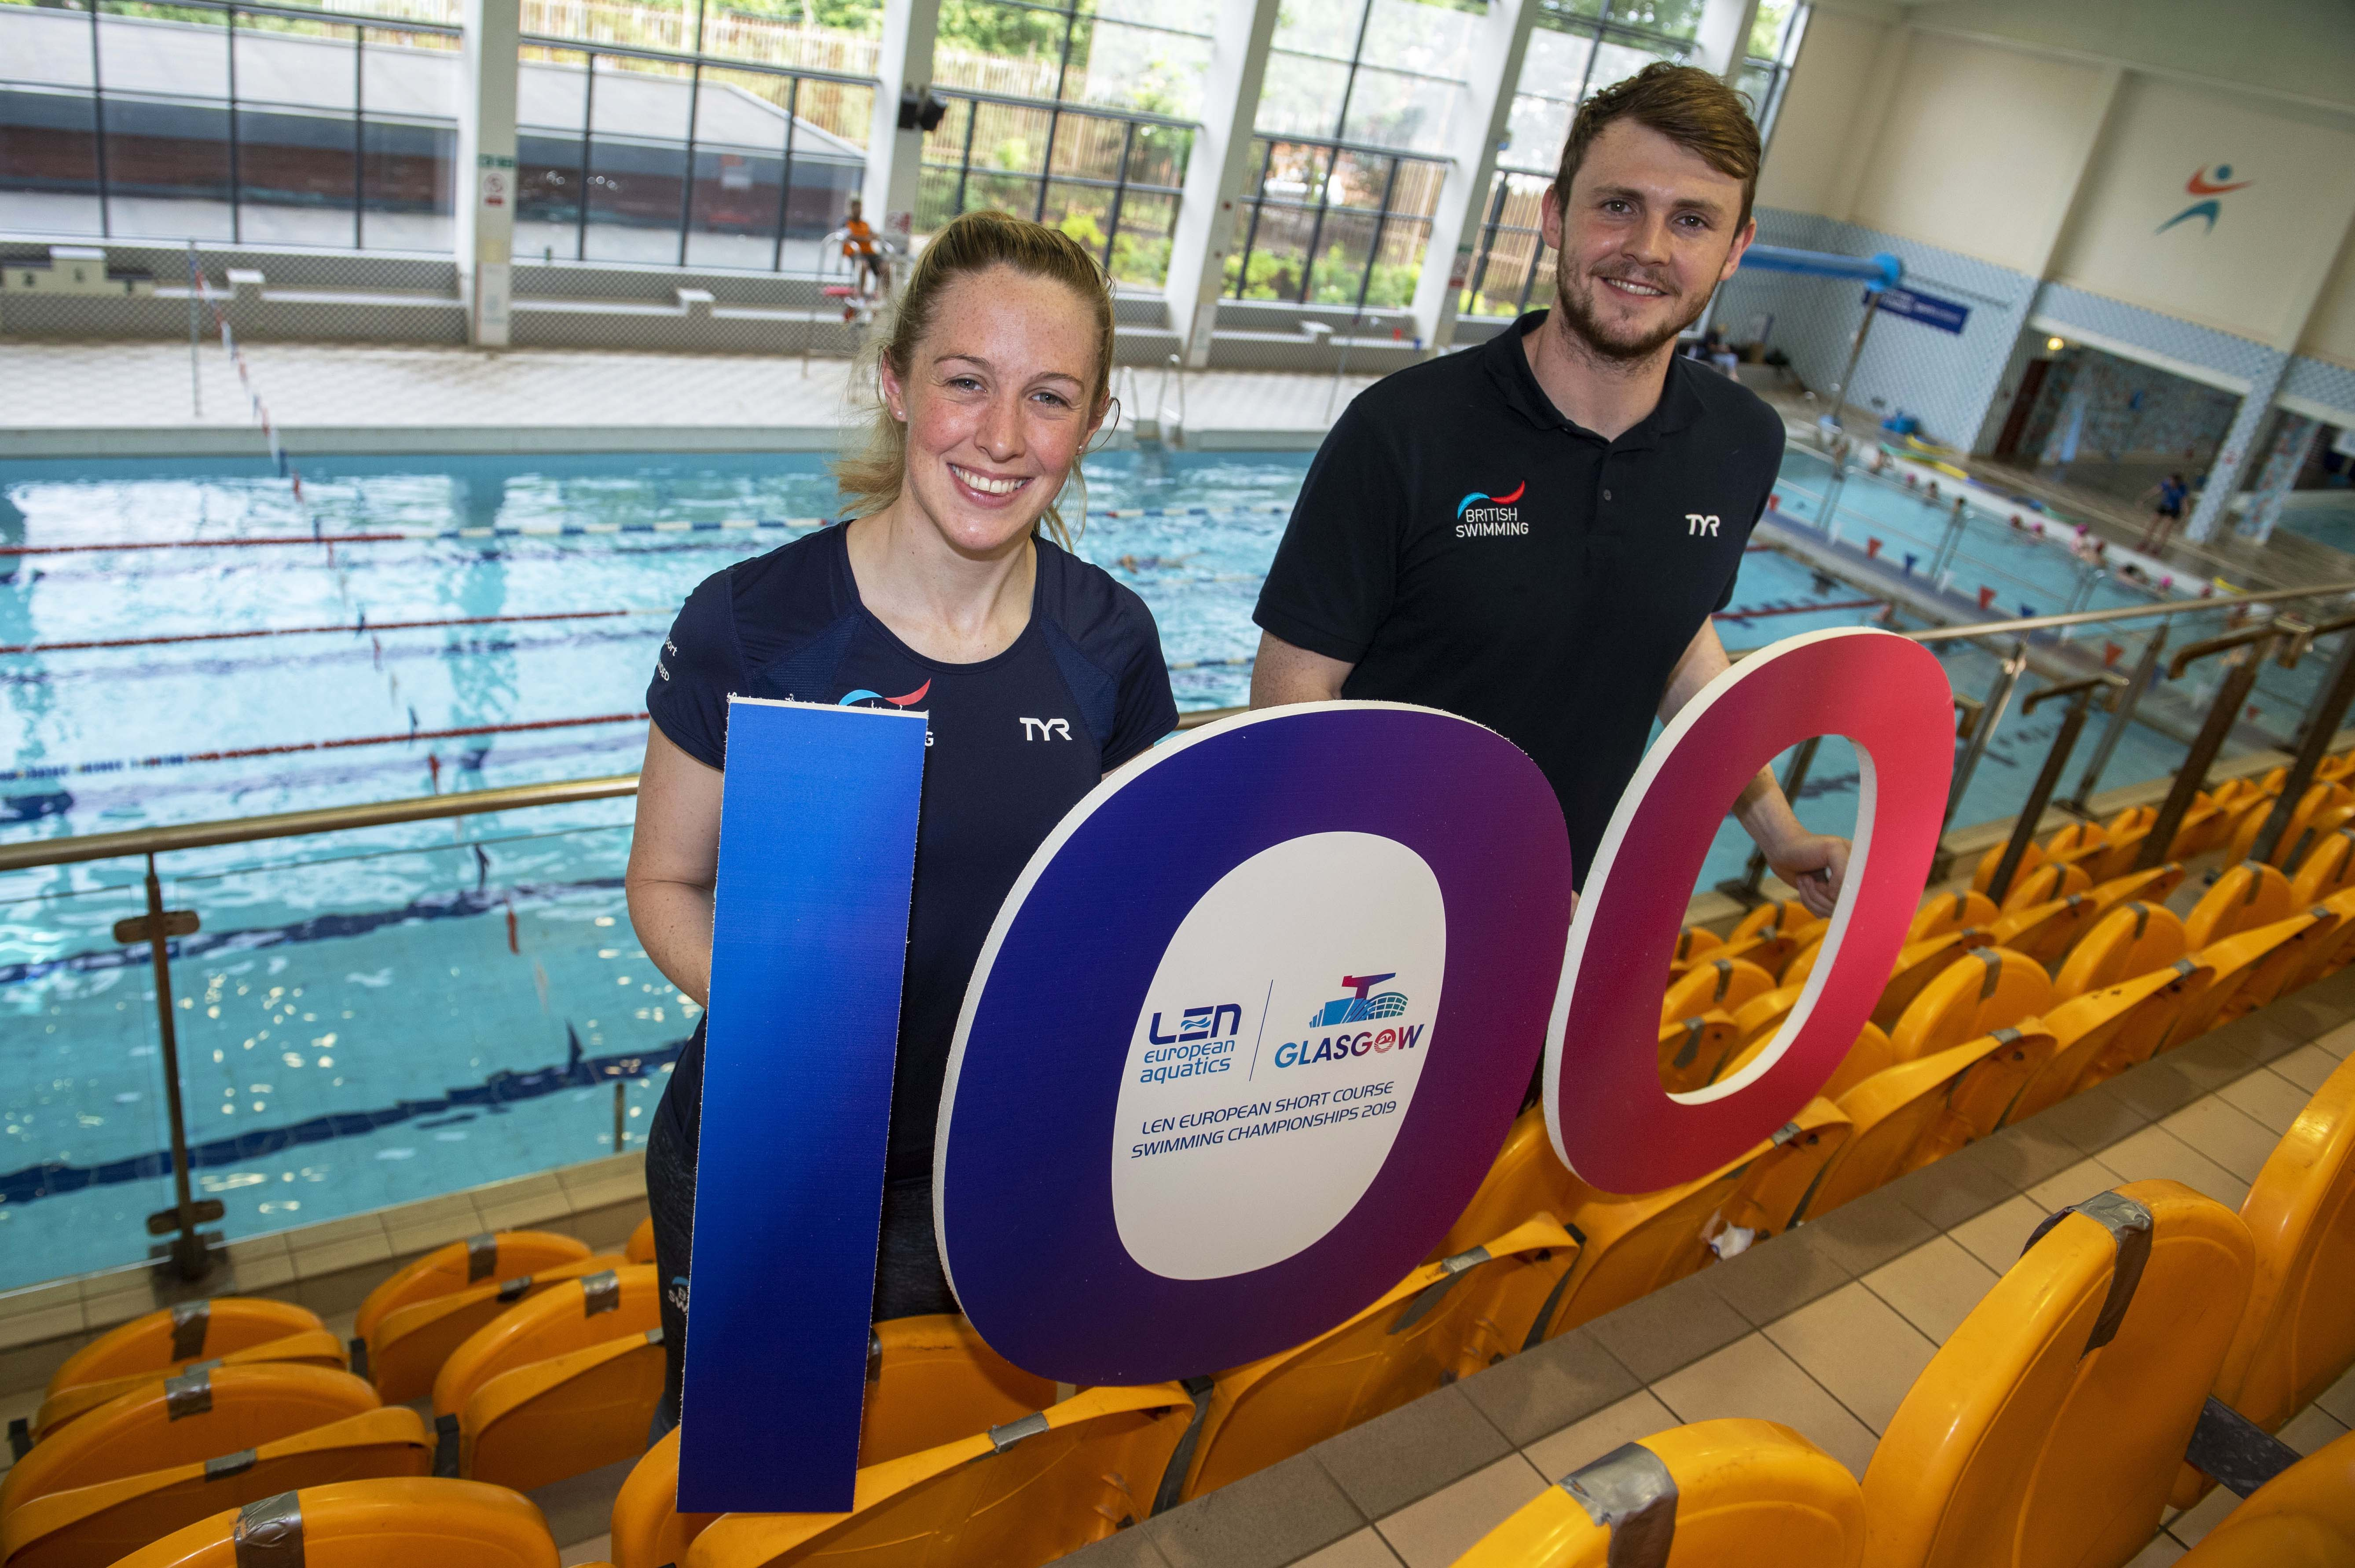 Hannah Miley and Ross Murdoch mark 100 days to the LEN European Short Course Swimming Championships